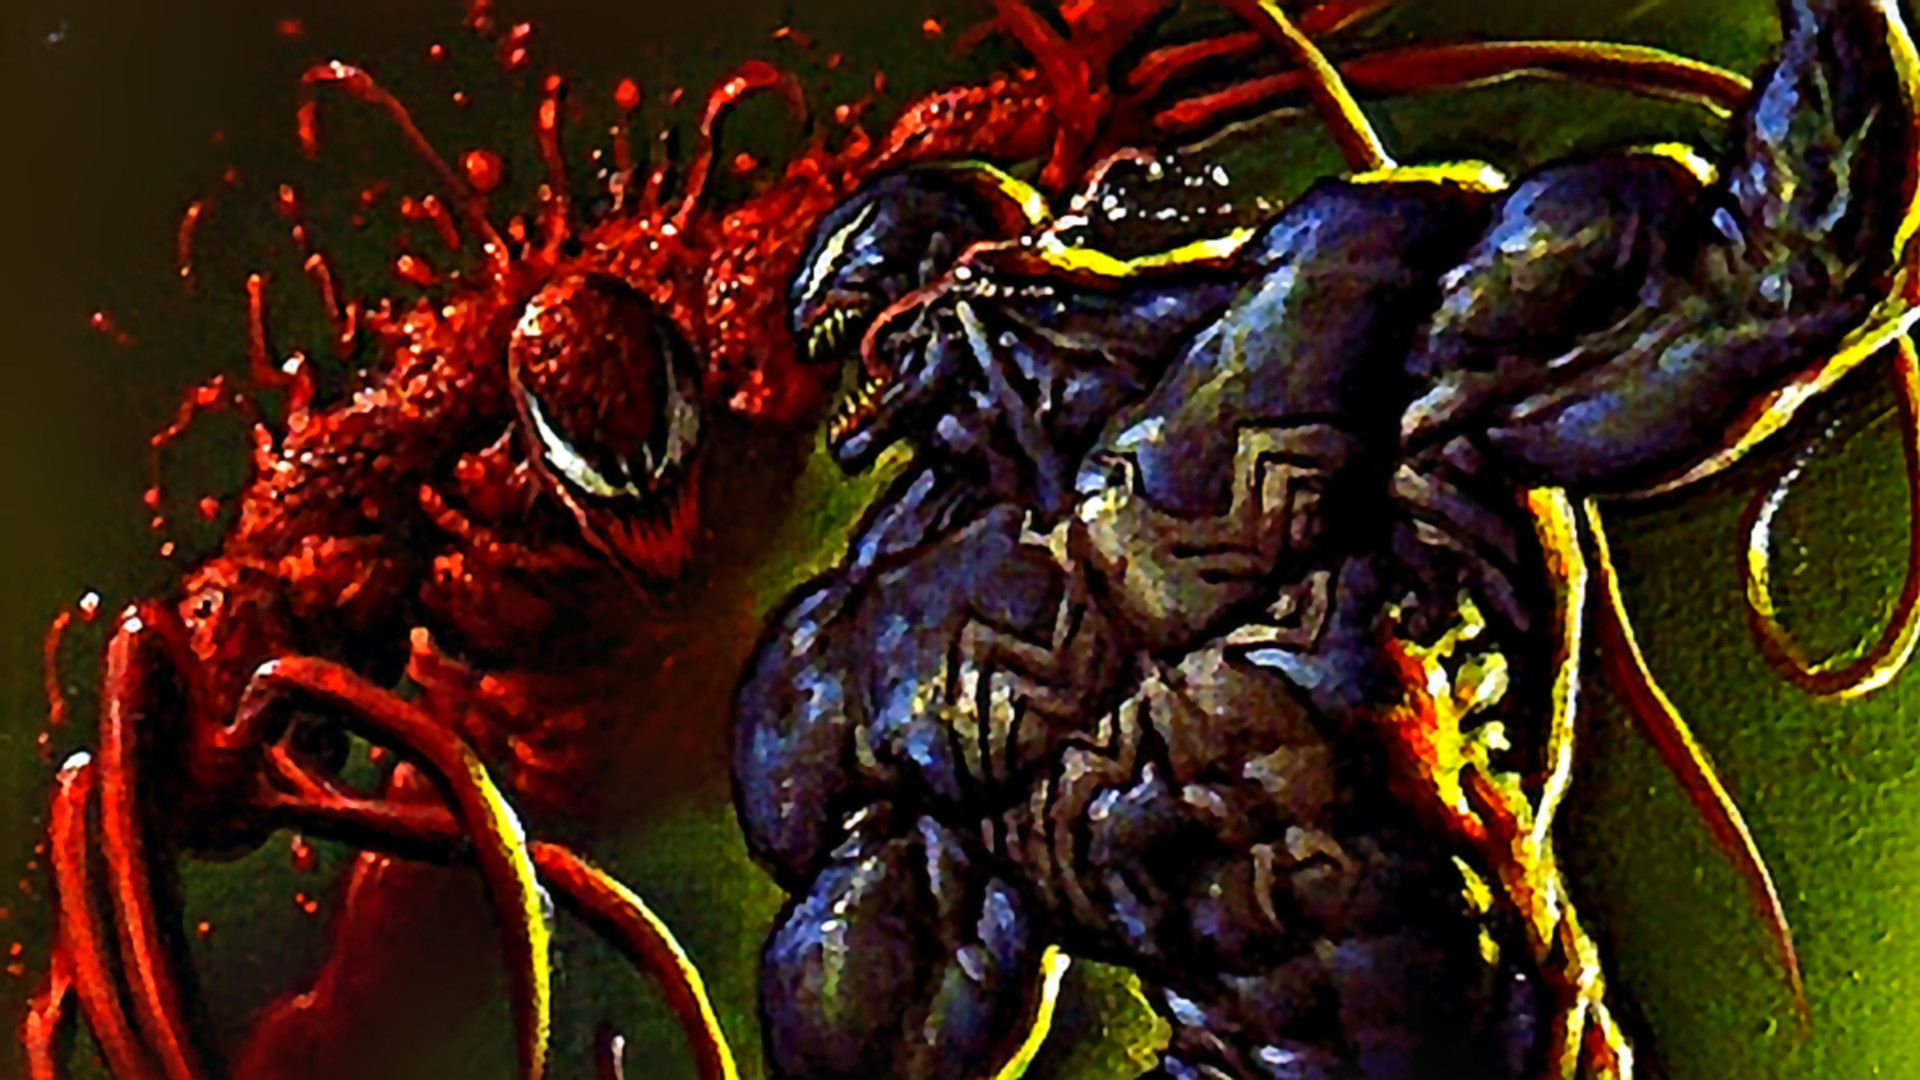 1920x1080 Carnage Versus Venom Wallpaper Image HD taken from Carnage .